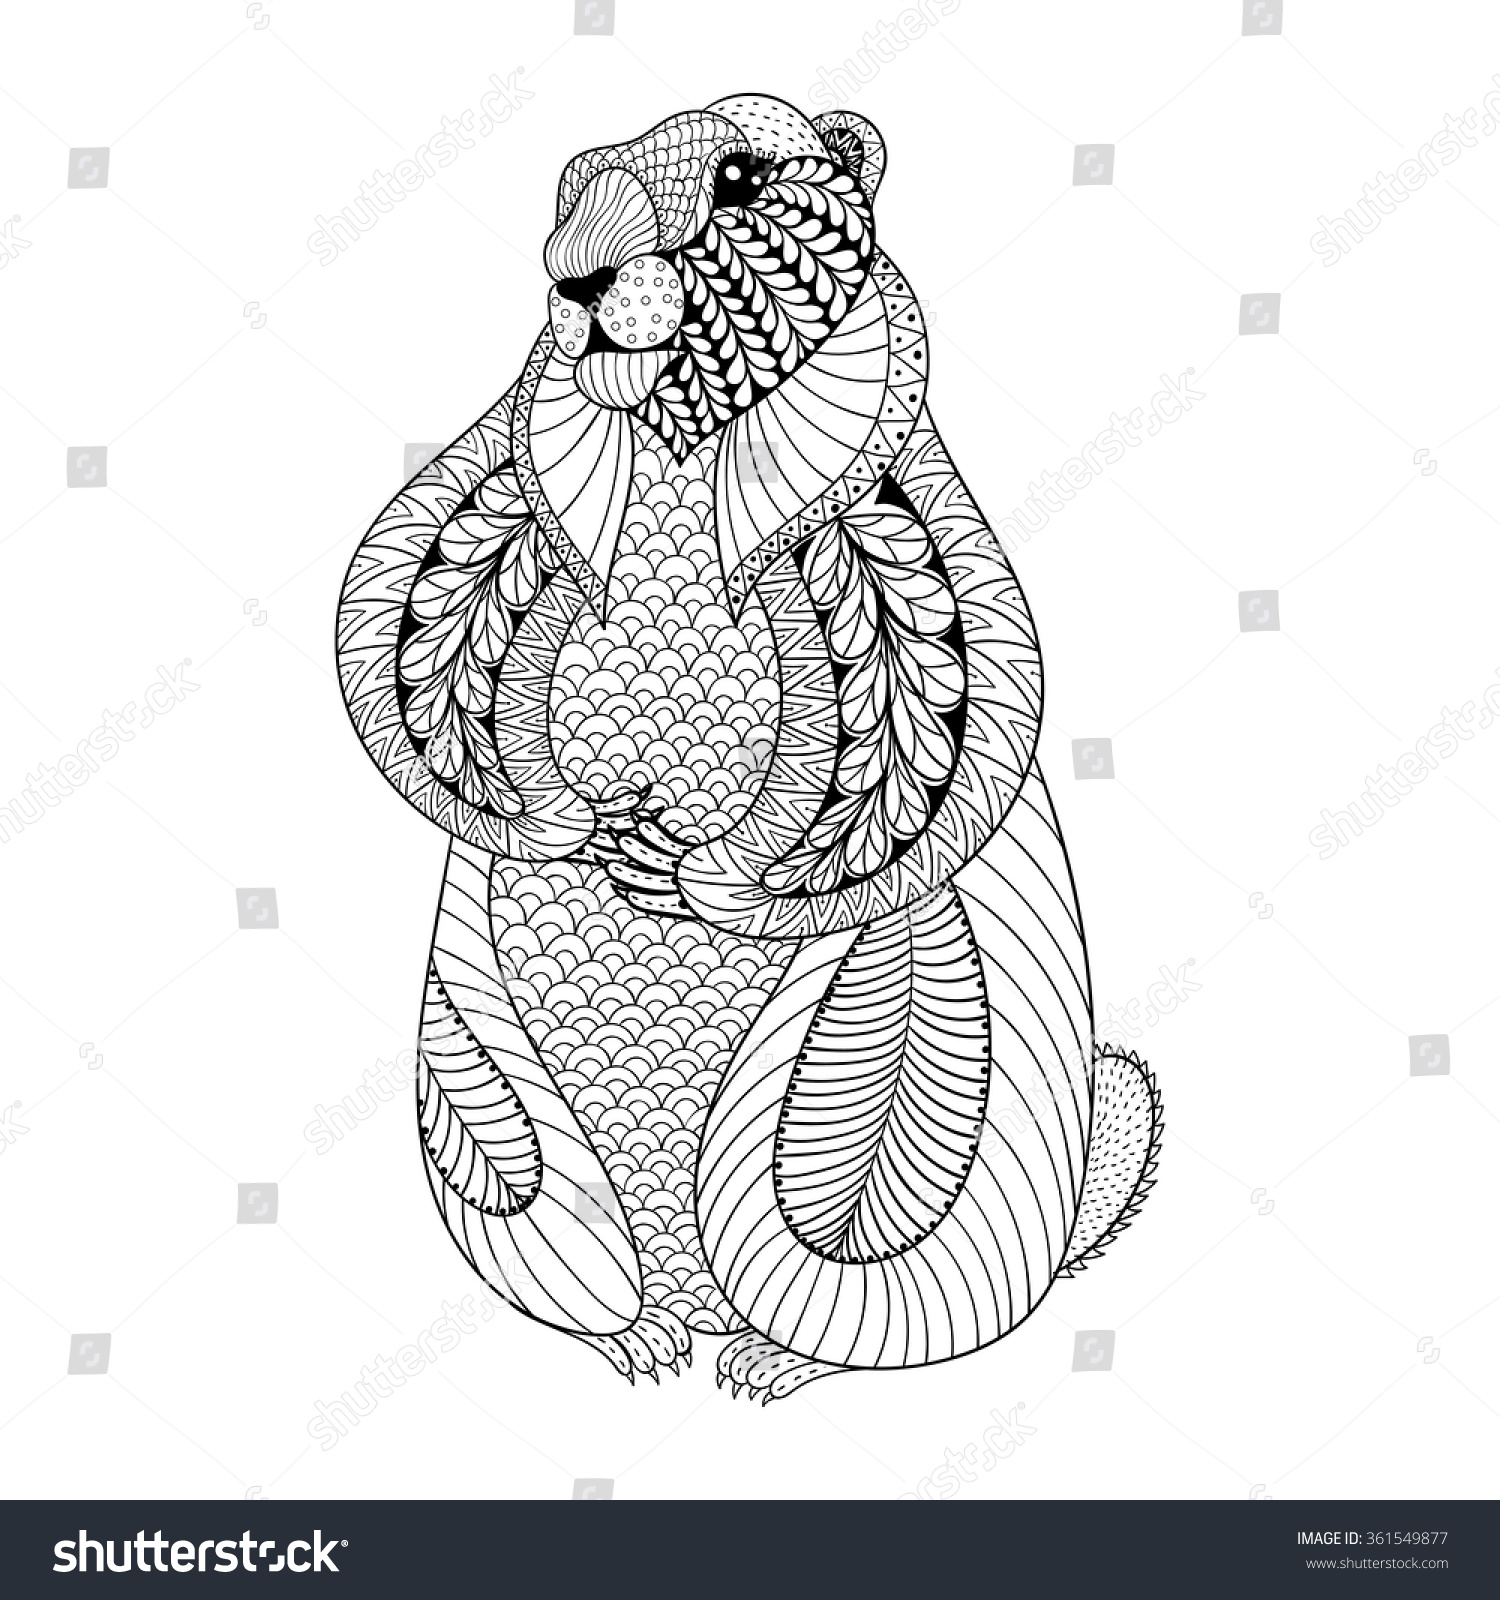 hand drawn groundhog for adult coloring pages in doodle zentangle tribal style groundhog day - Groundhog Coloring Pages Print